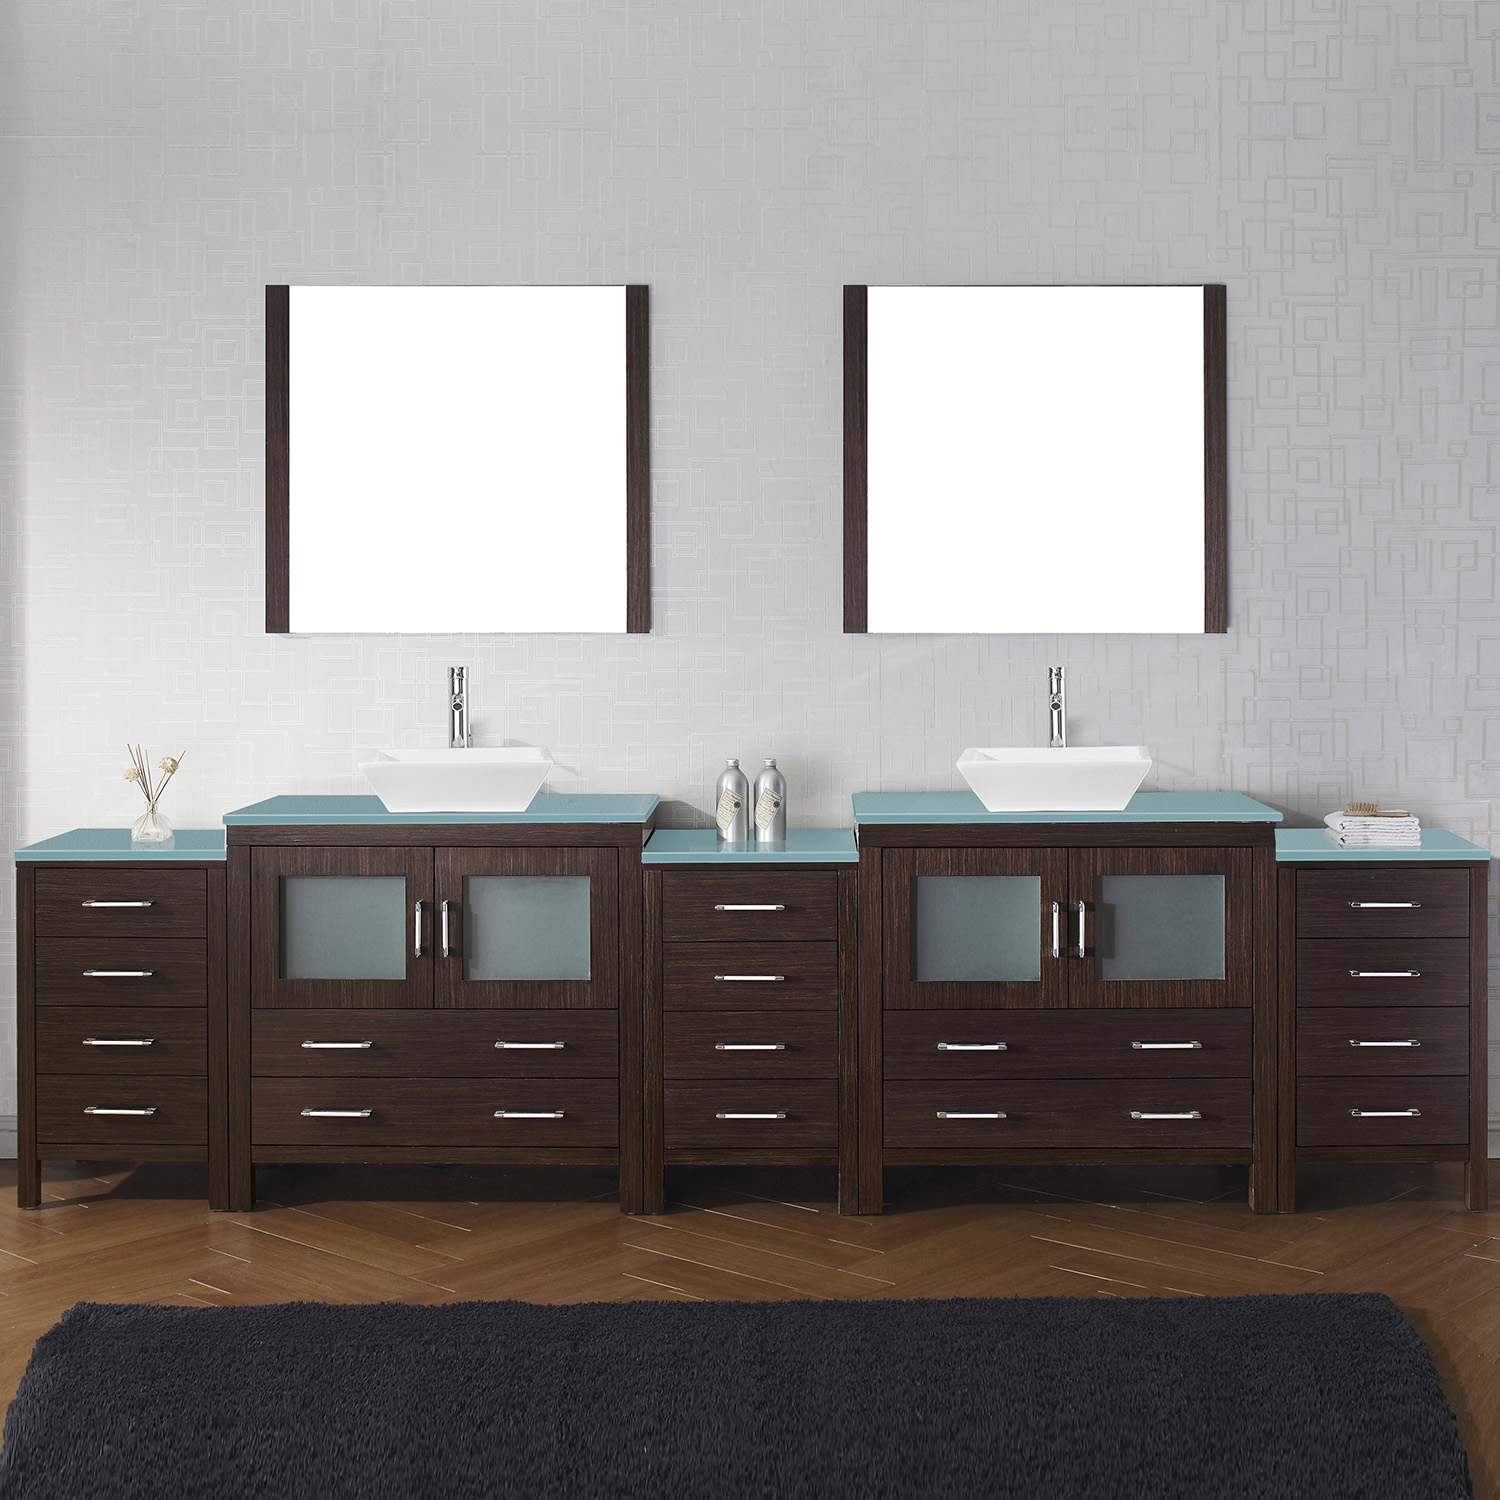 """126"""" Double Bath Vanity in Espresso with Aqua Tempered Glass Top and Square Sink with Polished Chrome Faucet and Mirrors"""